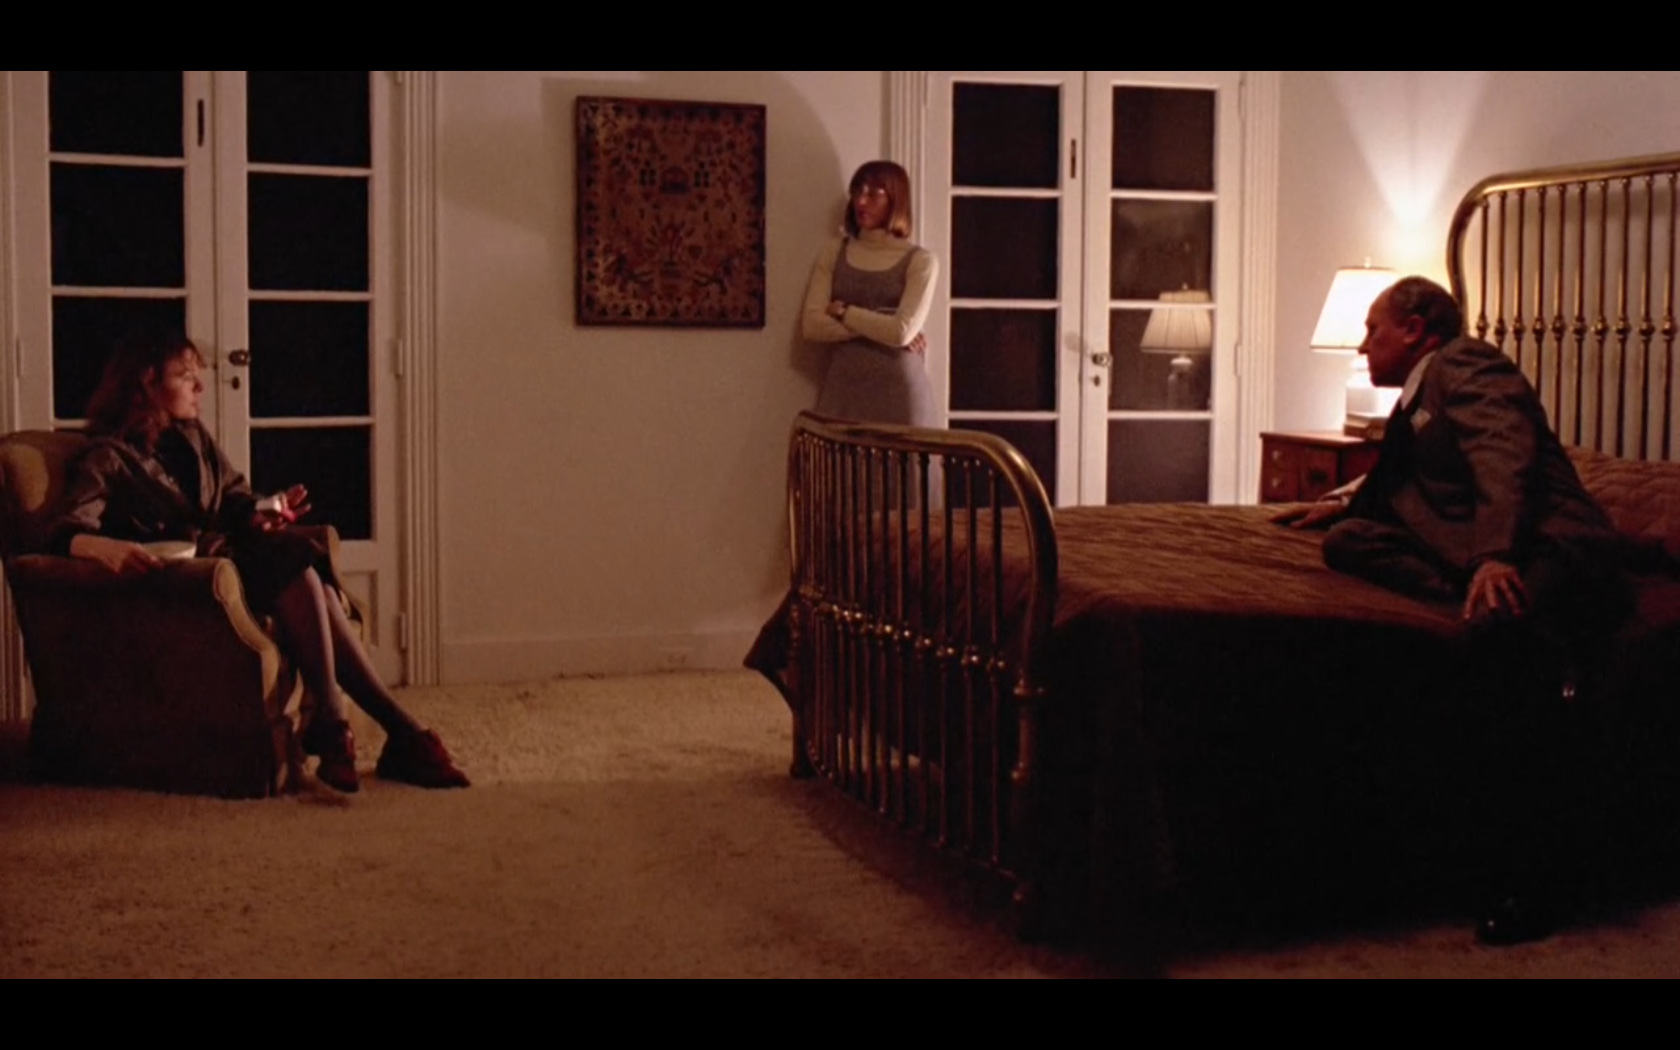 interiors 1978 by woody allen cinematography by gordon willis